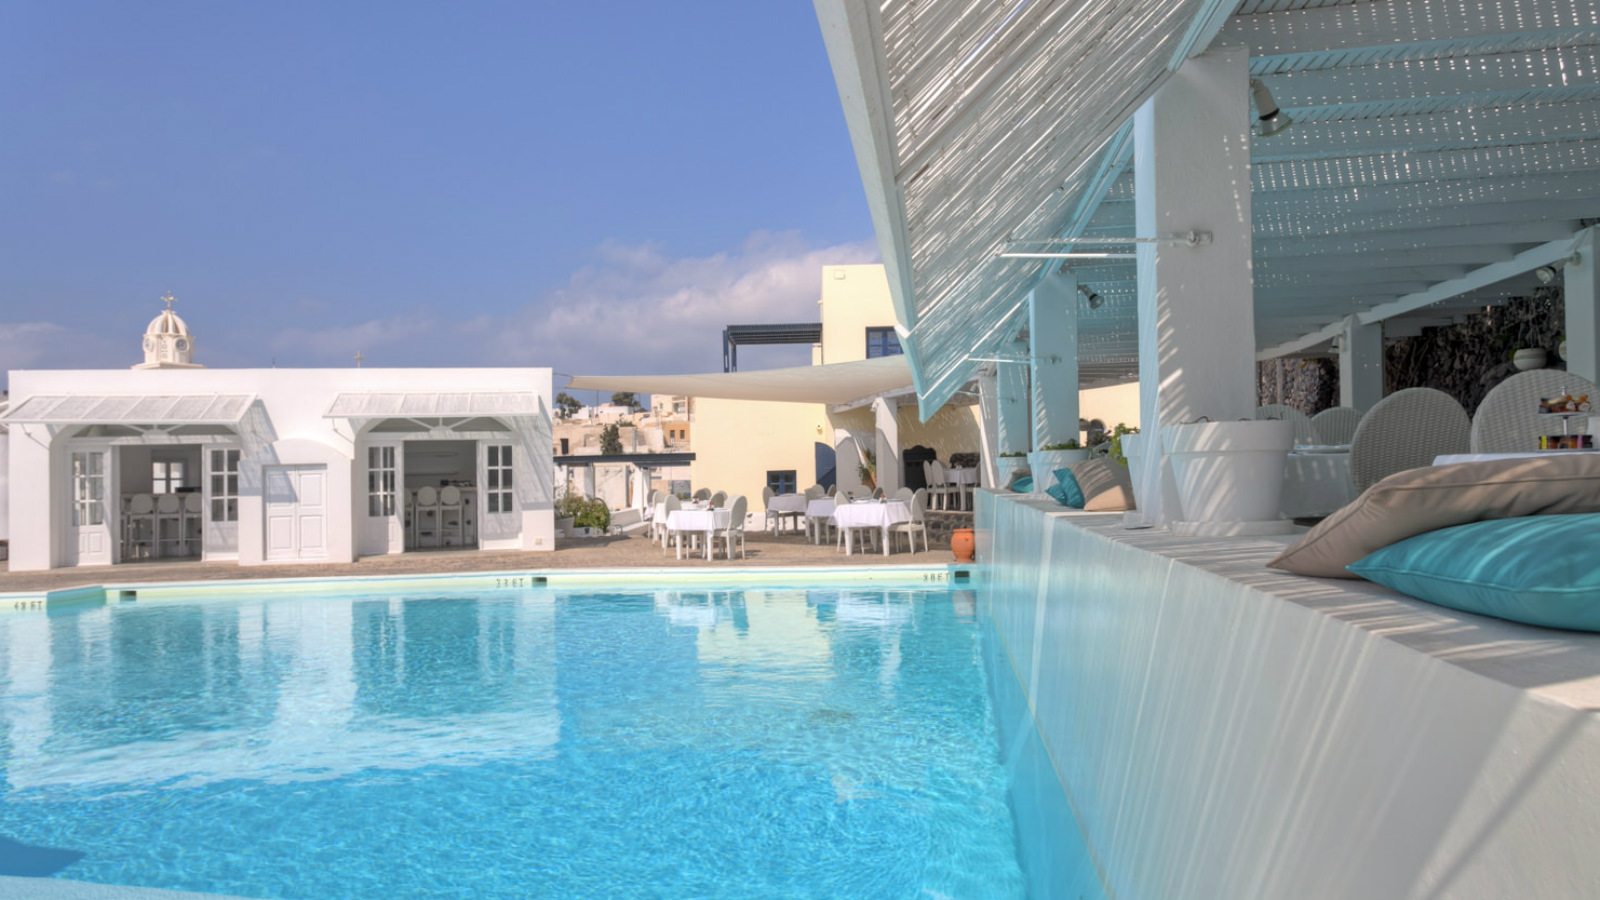 Pergola Pool Restaurant  Bar at Vedema a Luxury Collection Resort Santorini Greece